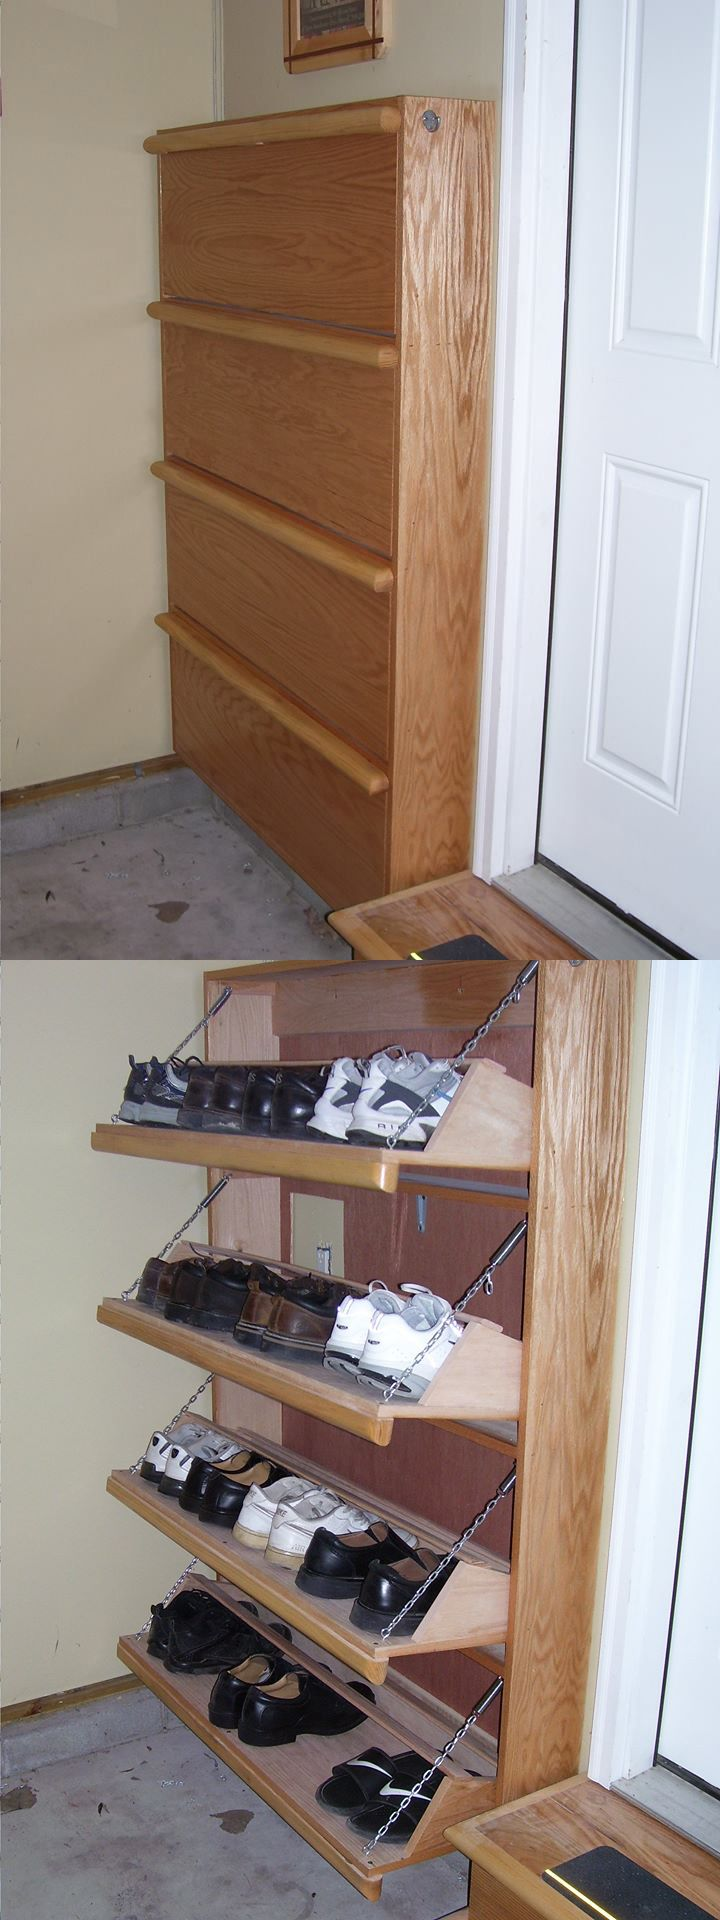 Custom Shoe Cabinet By Roy Rogers Diy Furniture Home Decor Furniture